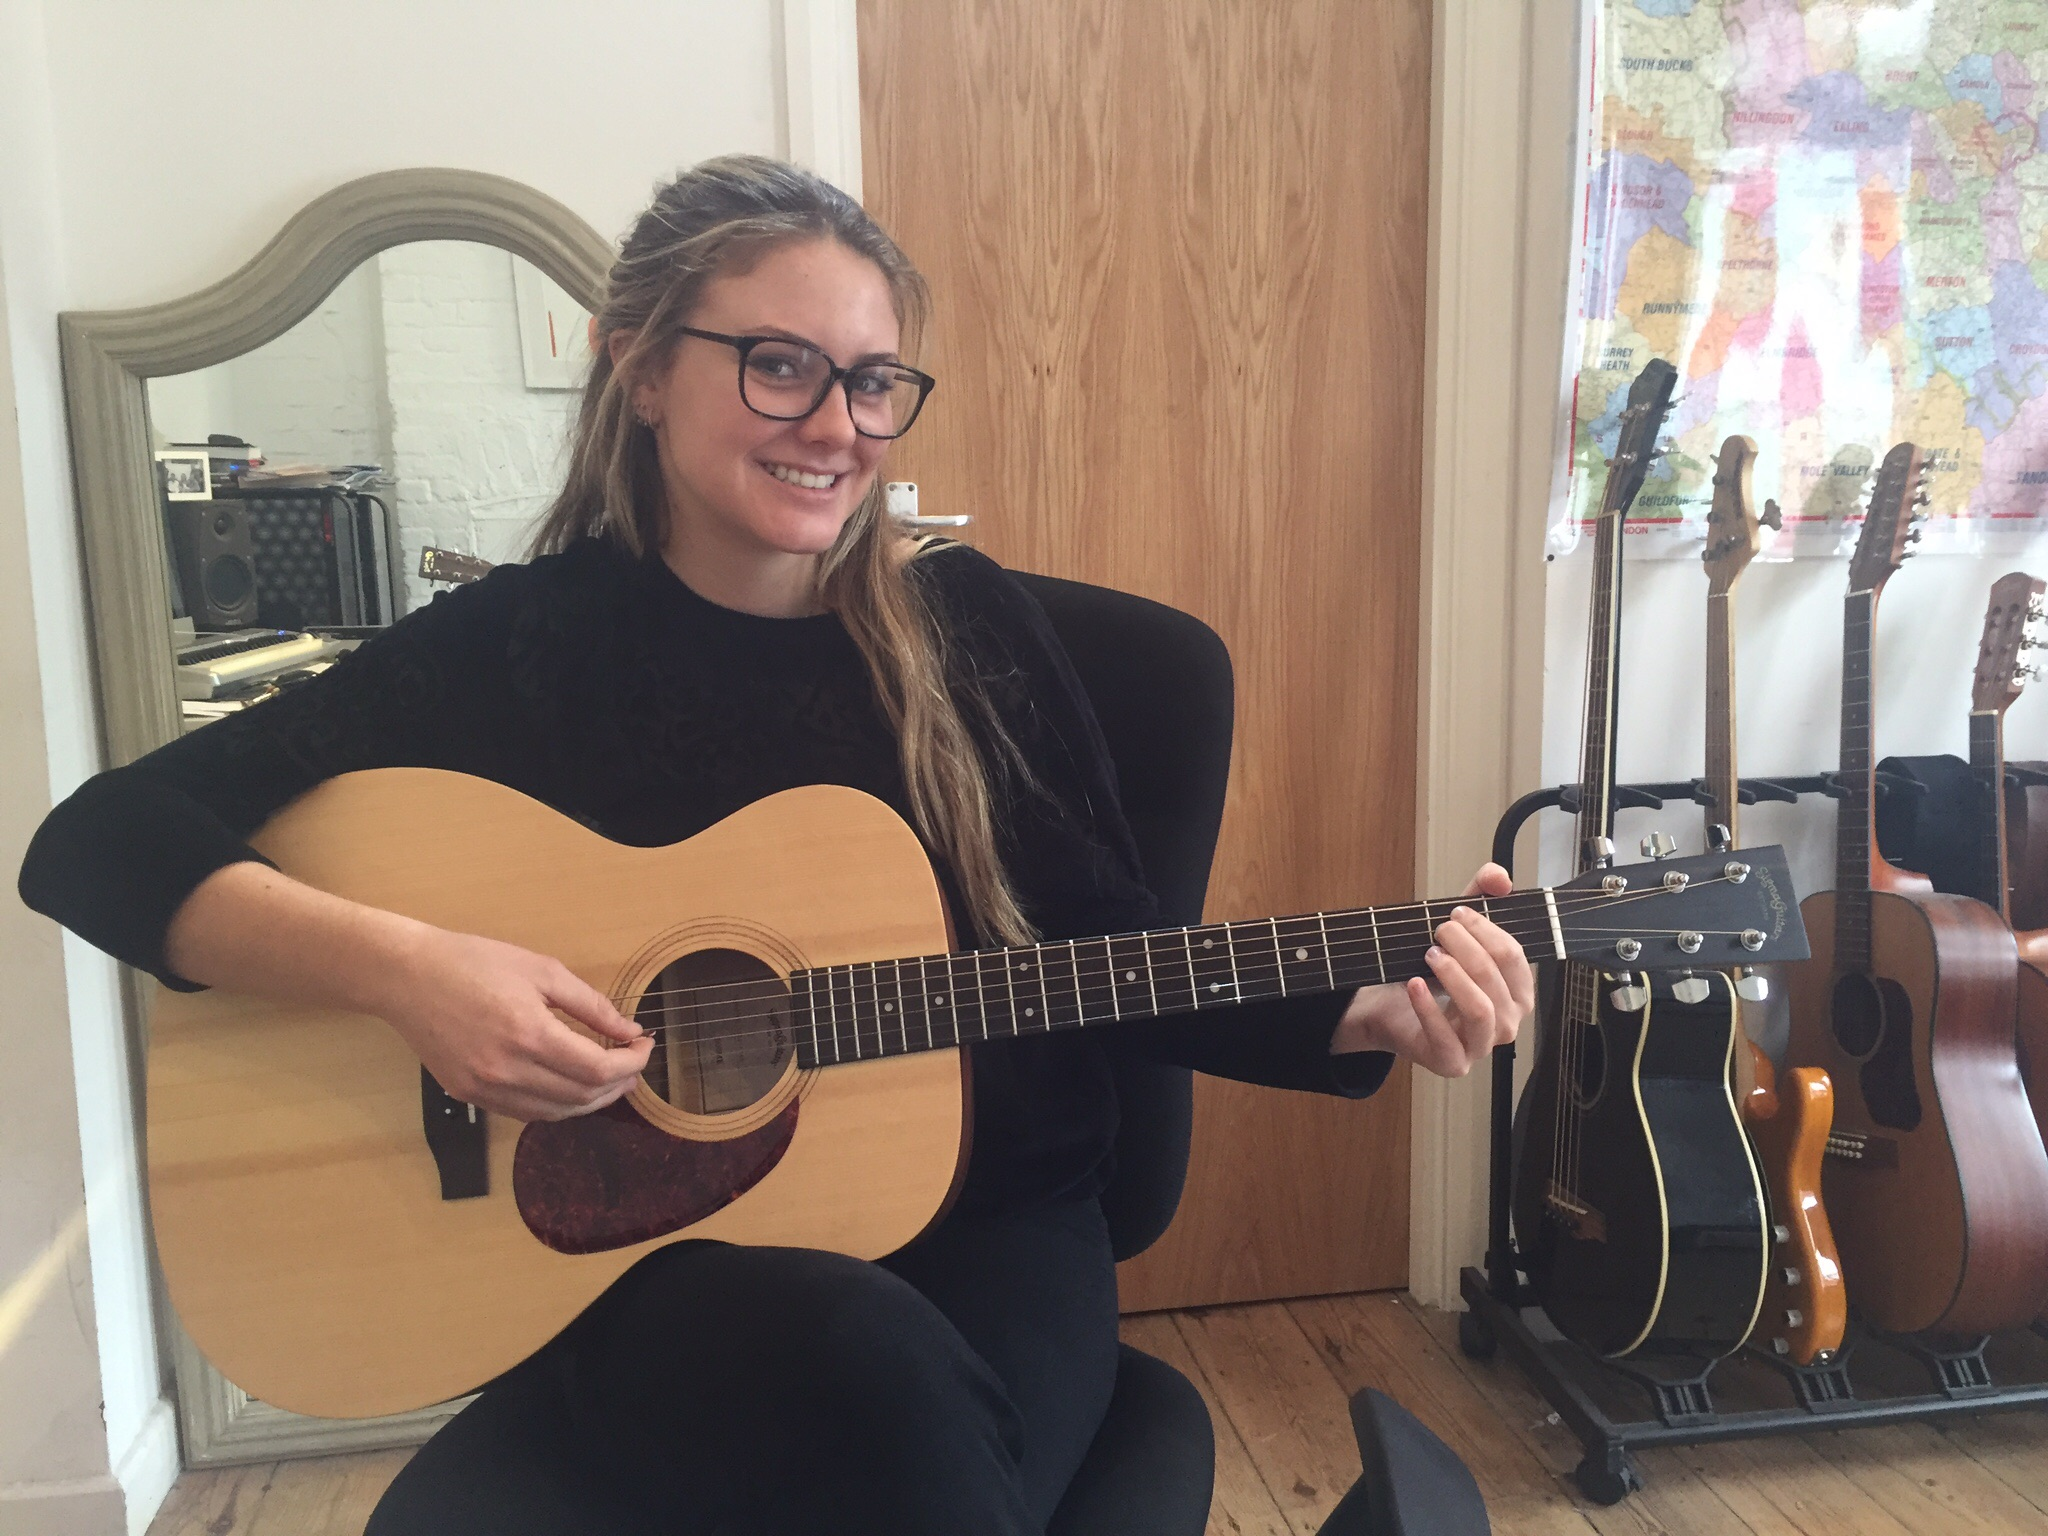 guitar lessons Brighton, Brighton guitar lessons, guitar lessons in Brighton